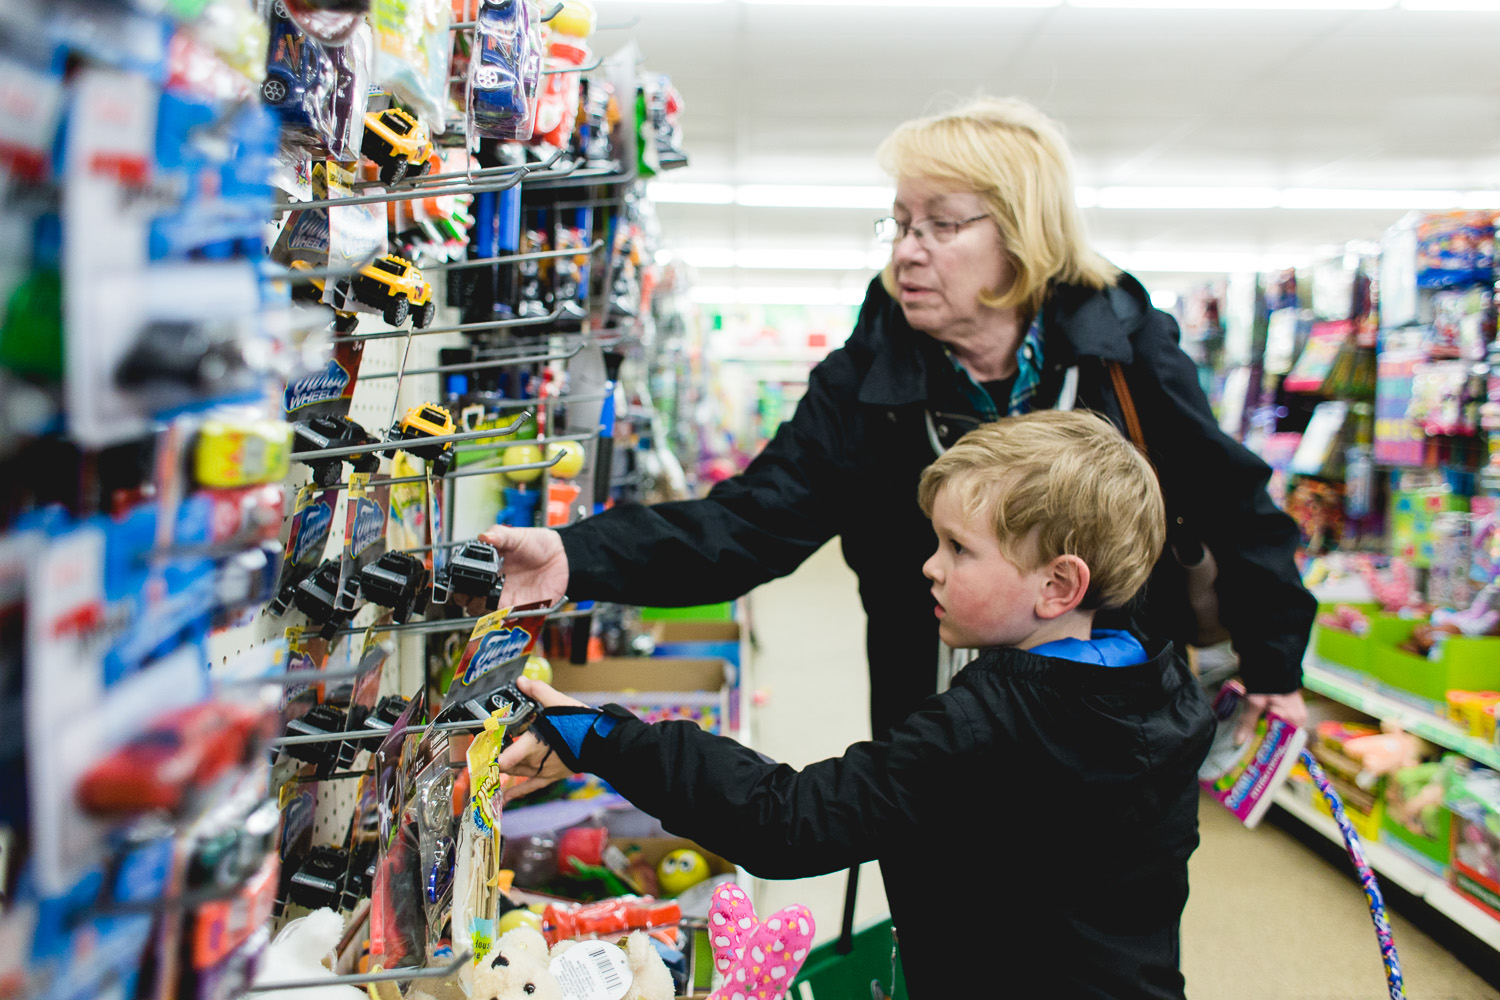 Dollar-Store-with-Mom-Mom-Apr2018-9-ss.jpg